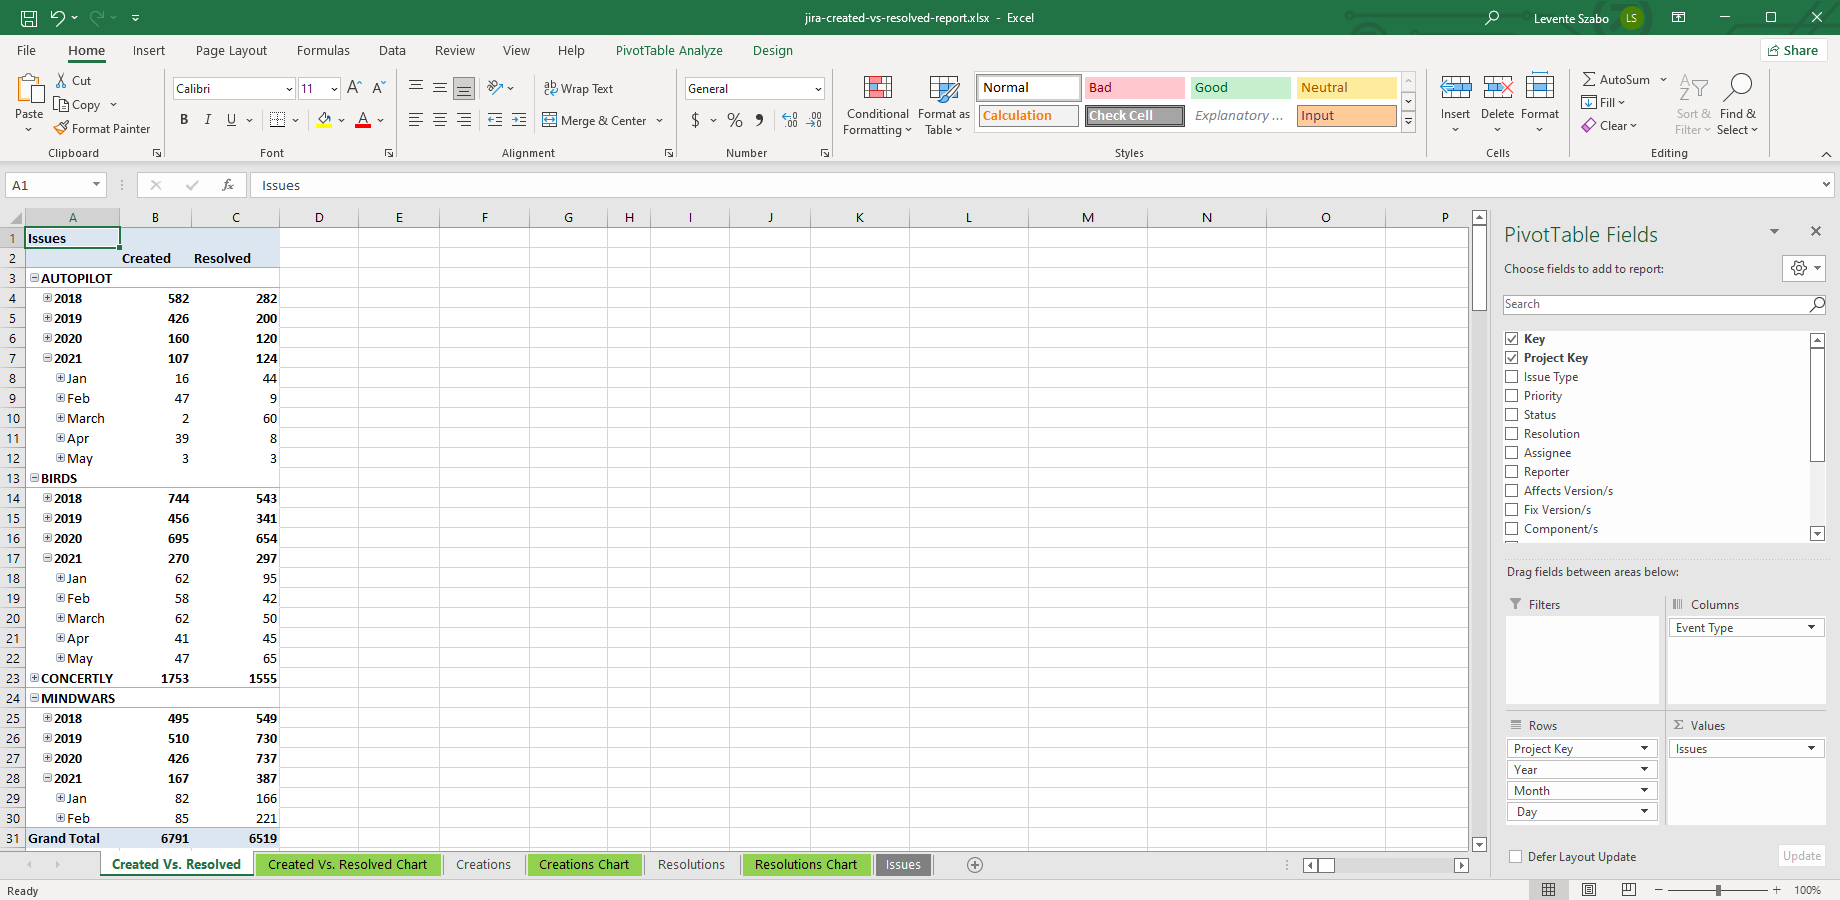 Created vs. Resolved pivot table